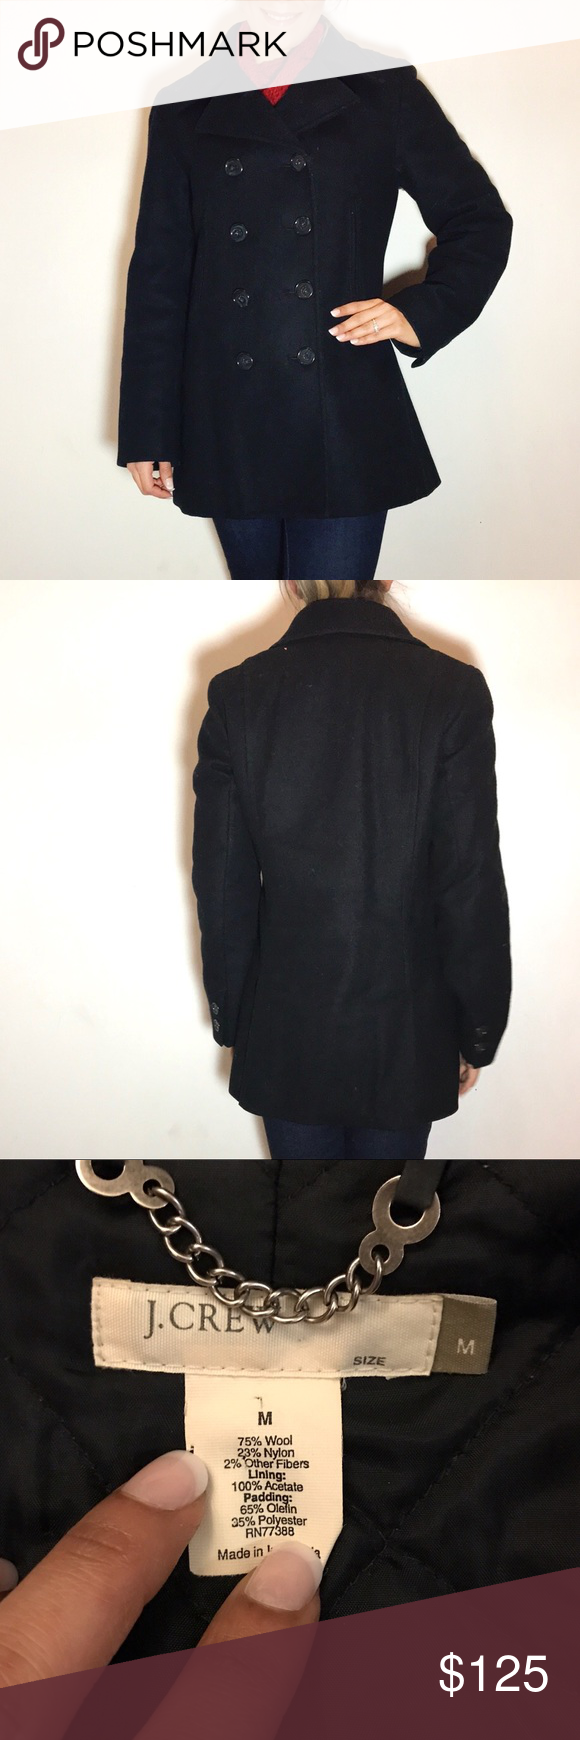 🚨SALE🚨J. Crew Black Wool Peacoat J. Crew Black Wool Peacoat -Size M. -Falls below hips. -Thinsulate super warm lining.  -Double breasted. -Great condition, some very small rips in the lining, as shown in the last picture. Can post up close pictures upon request.  NO Trades. Please make all offers through offer button. J. Crew Jackets & Coats Pea Coats